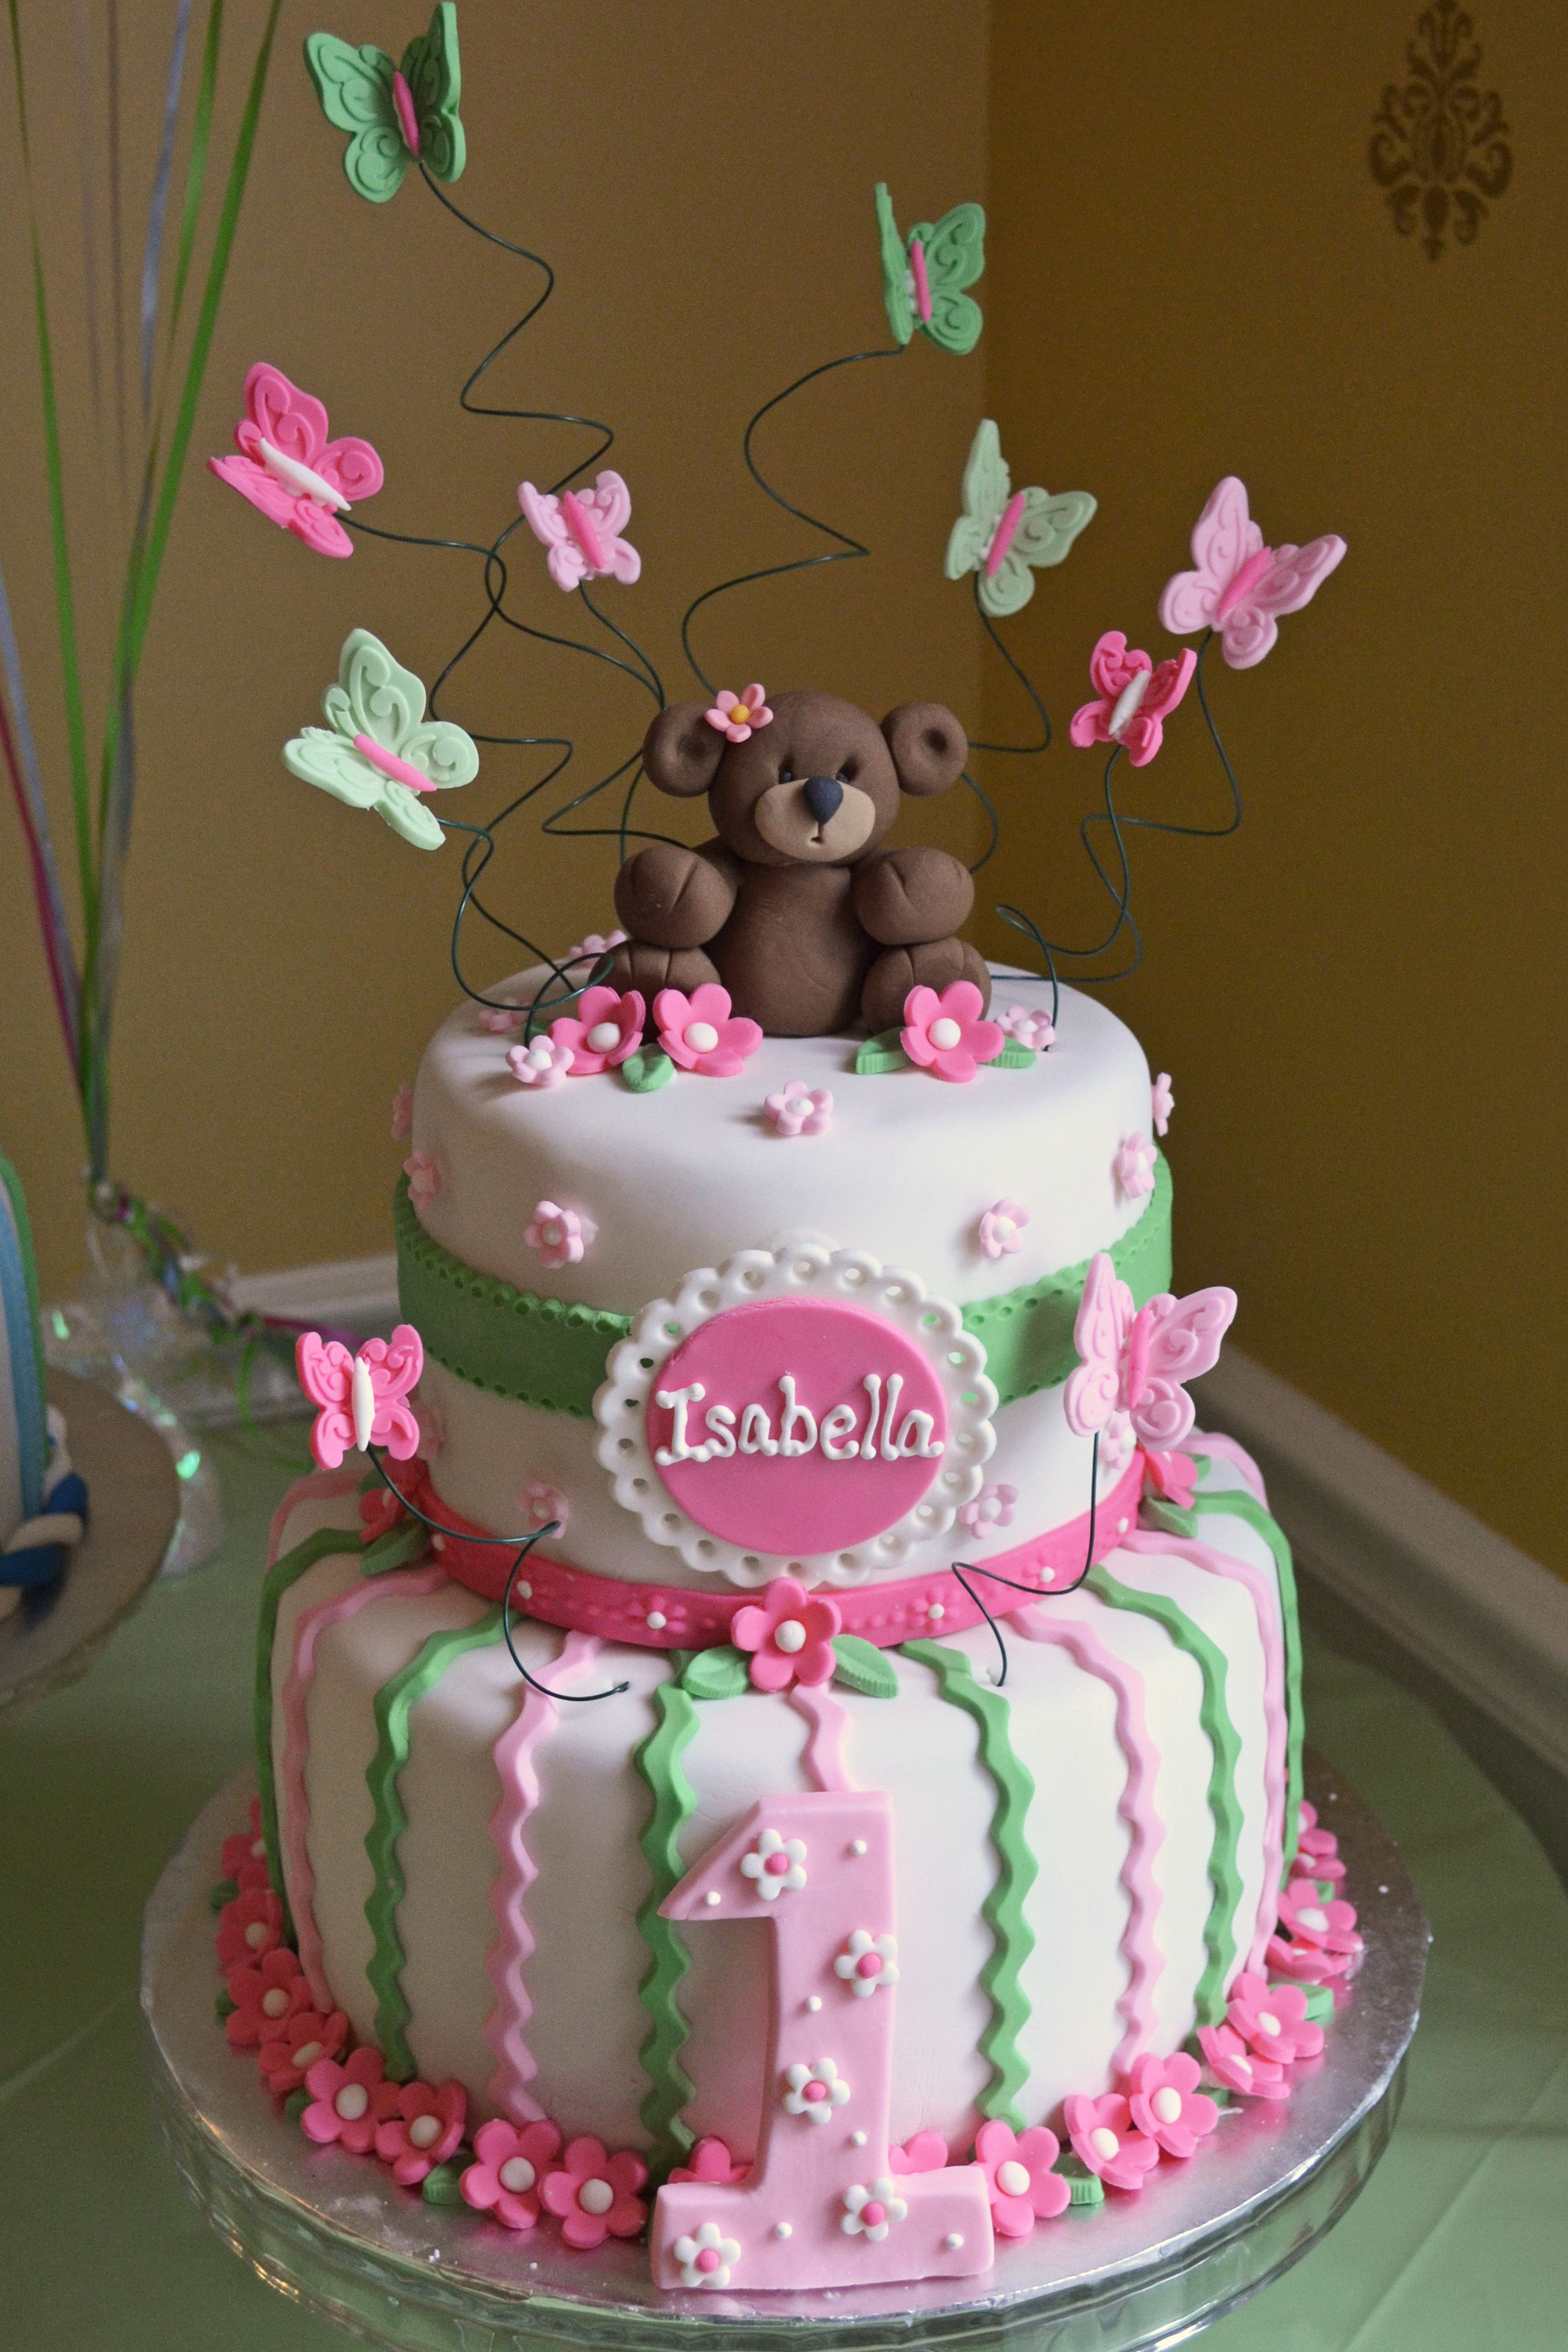 Girl St Birthday Cake Pink And Green Bears And Butterflies - 1st girl birthday cake